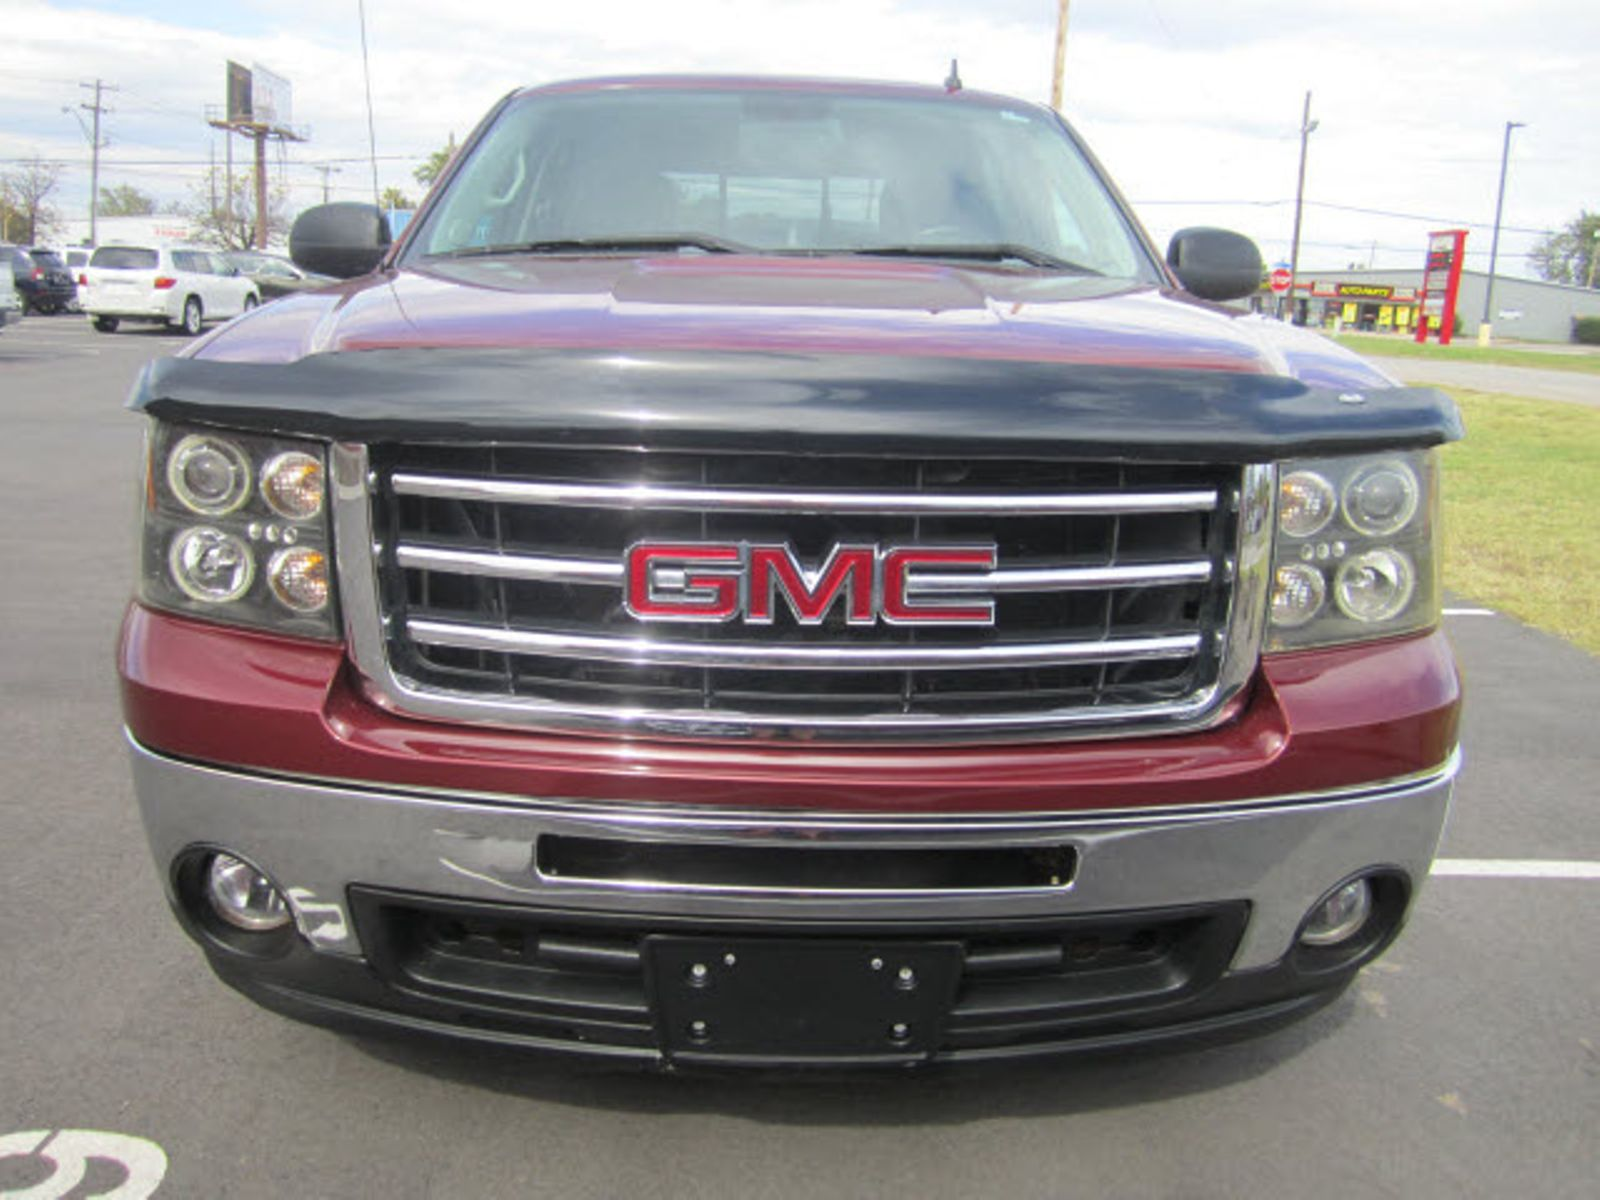 exterior gmc fq photos zombiedrive information pickup base cab hybr crew oem hybrid sierra and